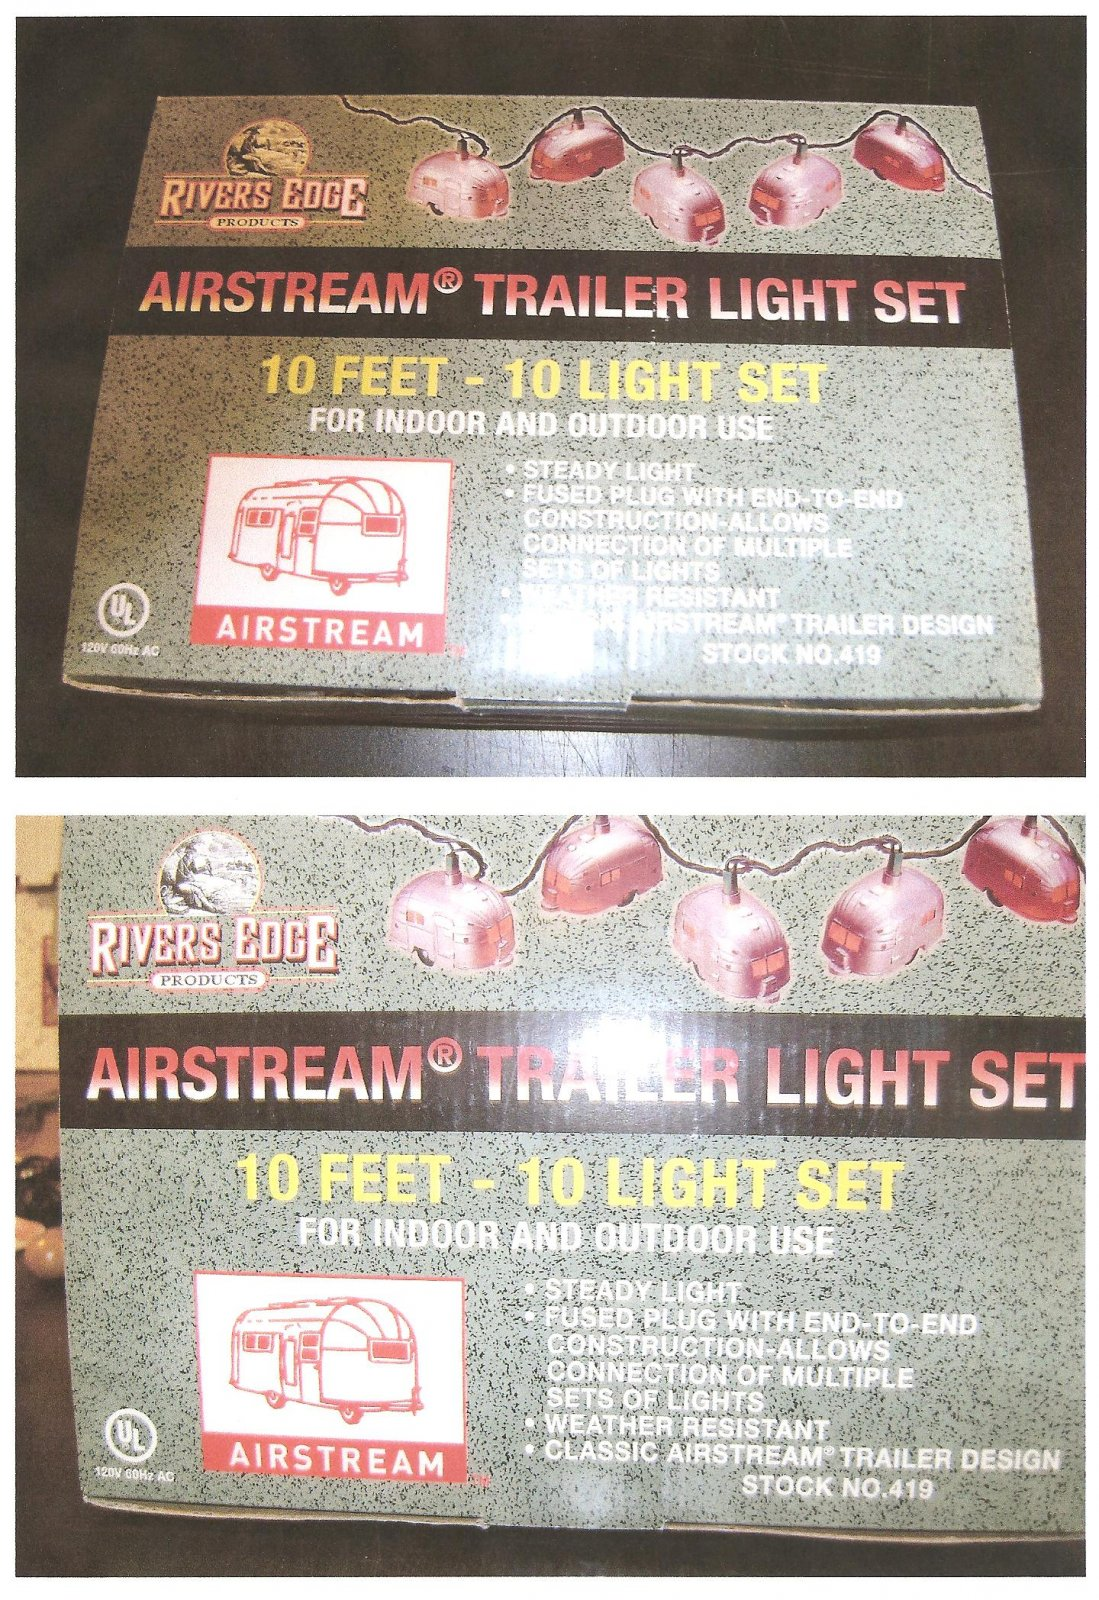 Click image for larger version  Name:Airstream Christmas Tree Lights.jpg Views:140 Size:528.6 KB ID:148458